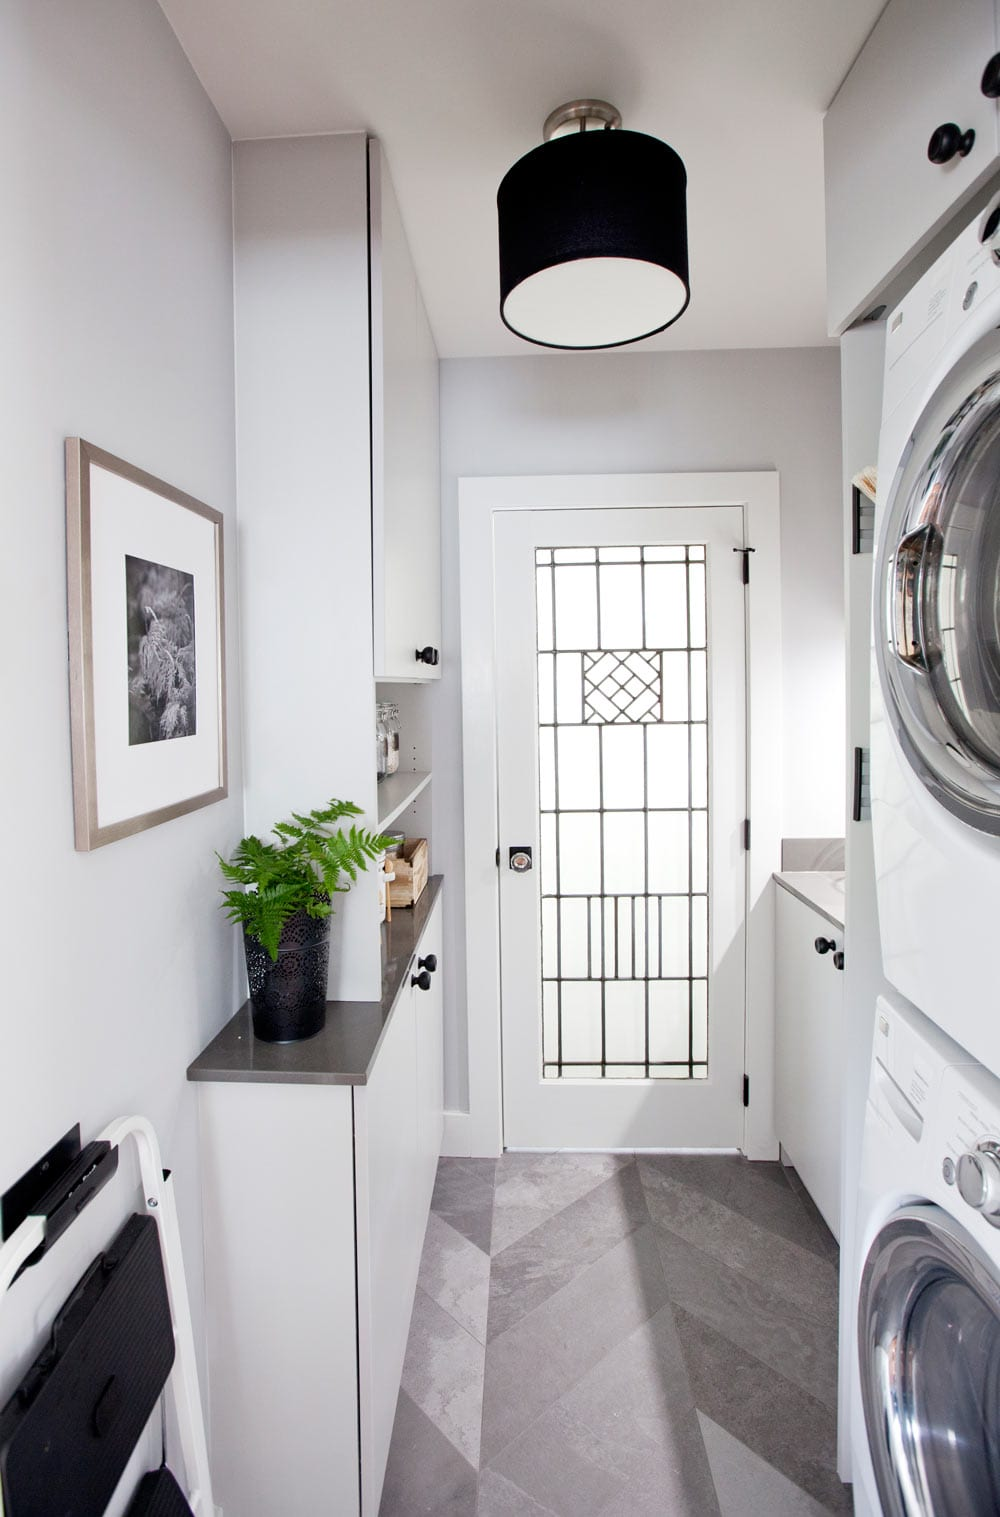 blog-love it or list it-ep4079-after-laundry-room-2